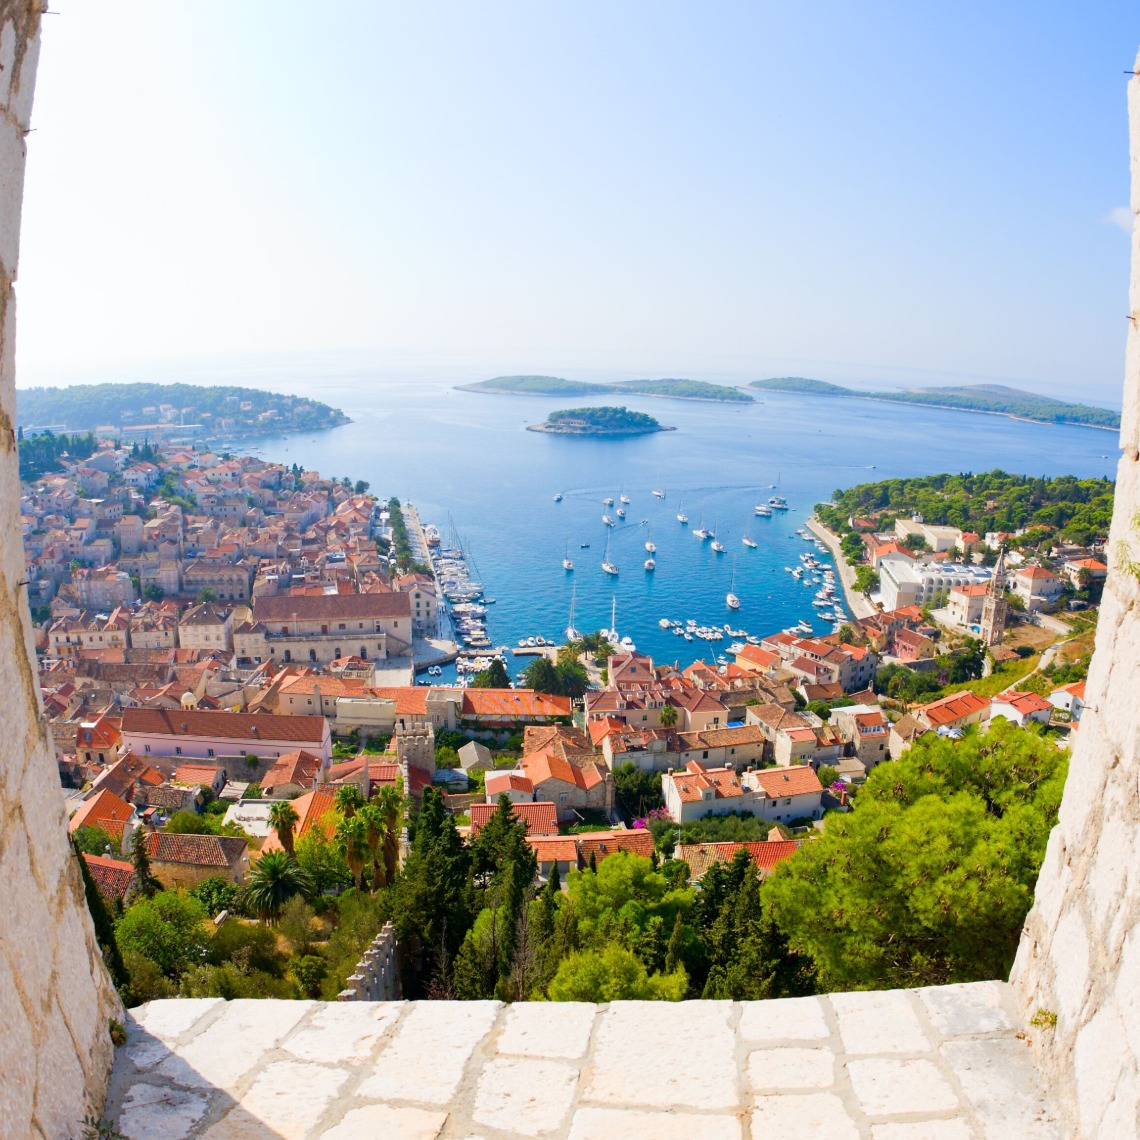 Croatia_Split to Hvar day trip_boat tours from Split_1140x1140